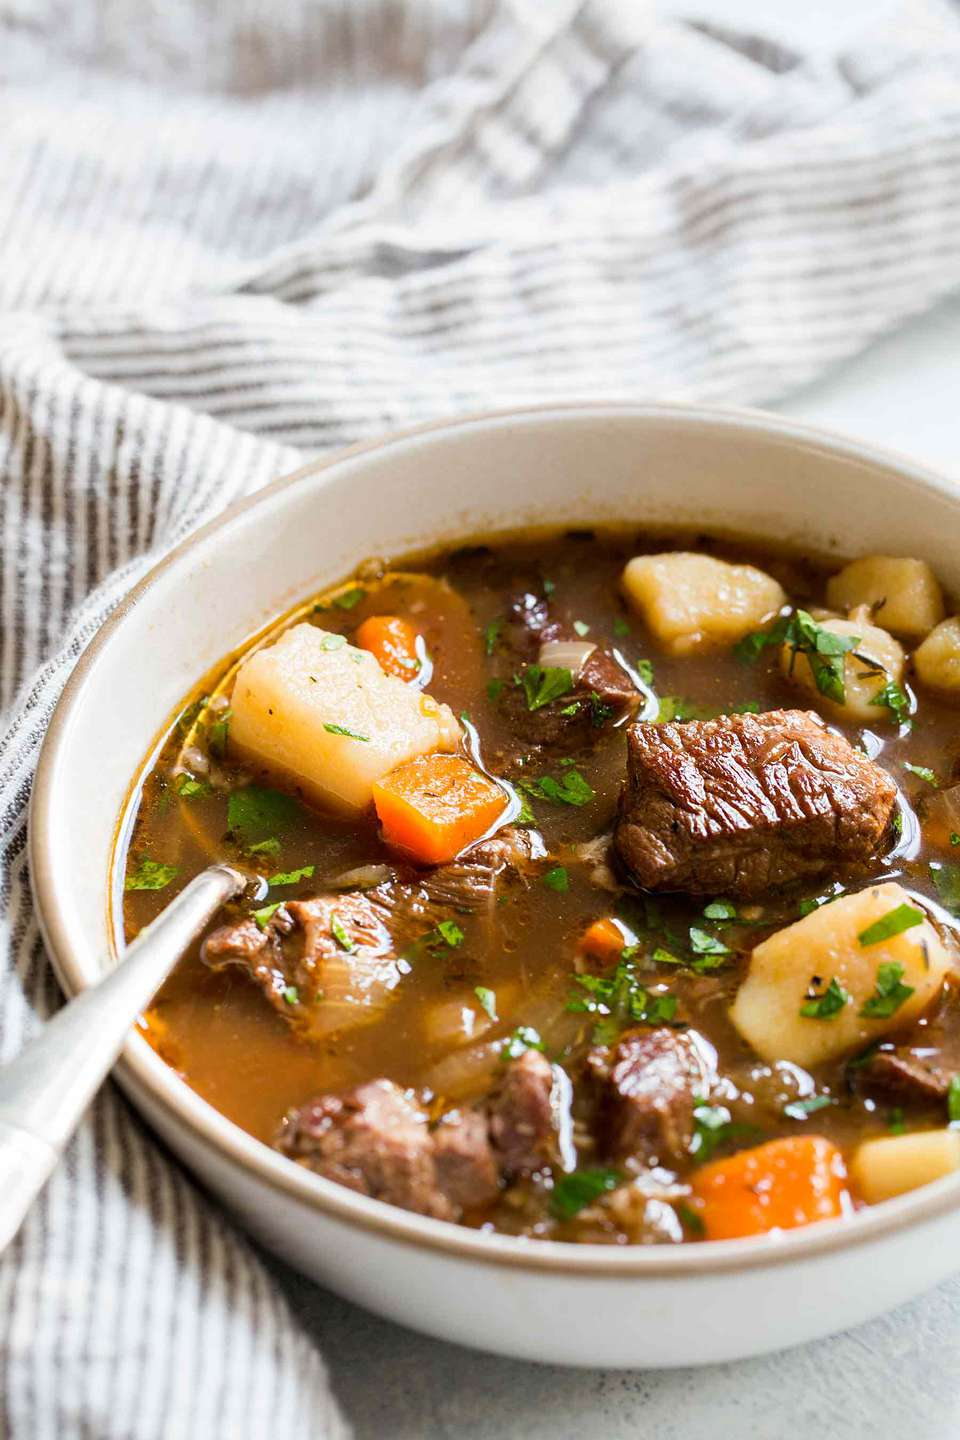 Beef stew recipe made with chuck roast, carrots, and potatoes served in a bowl with a spoon